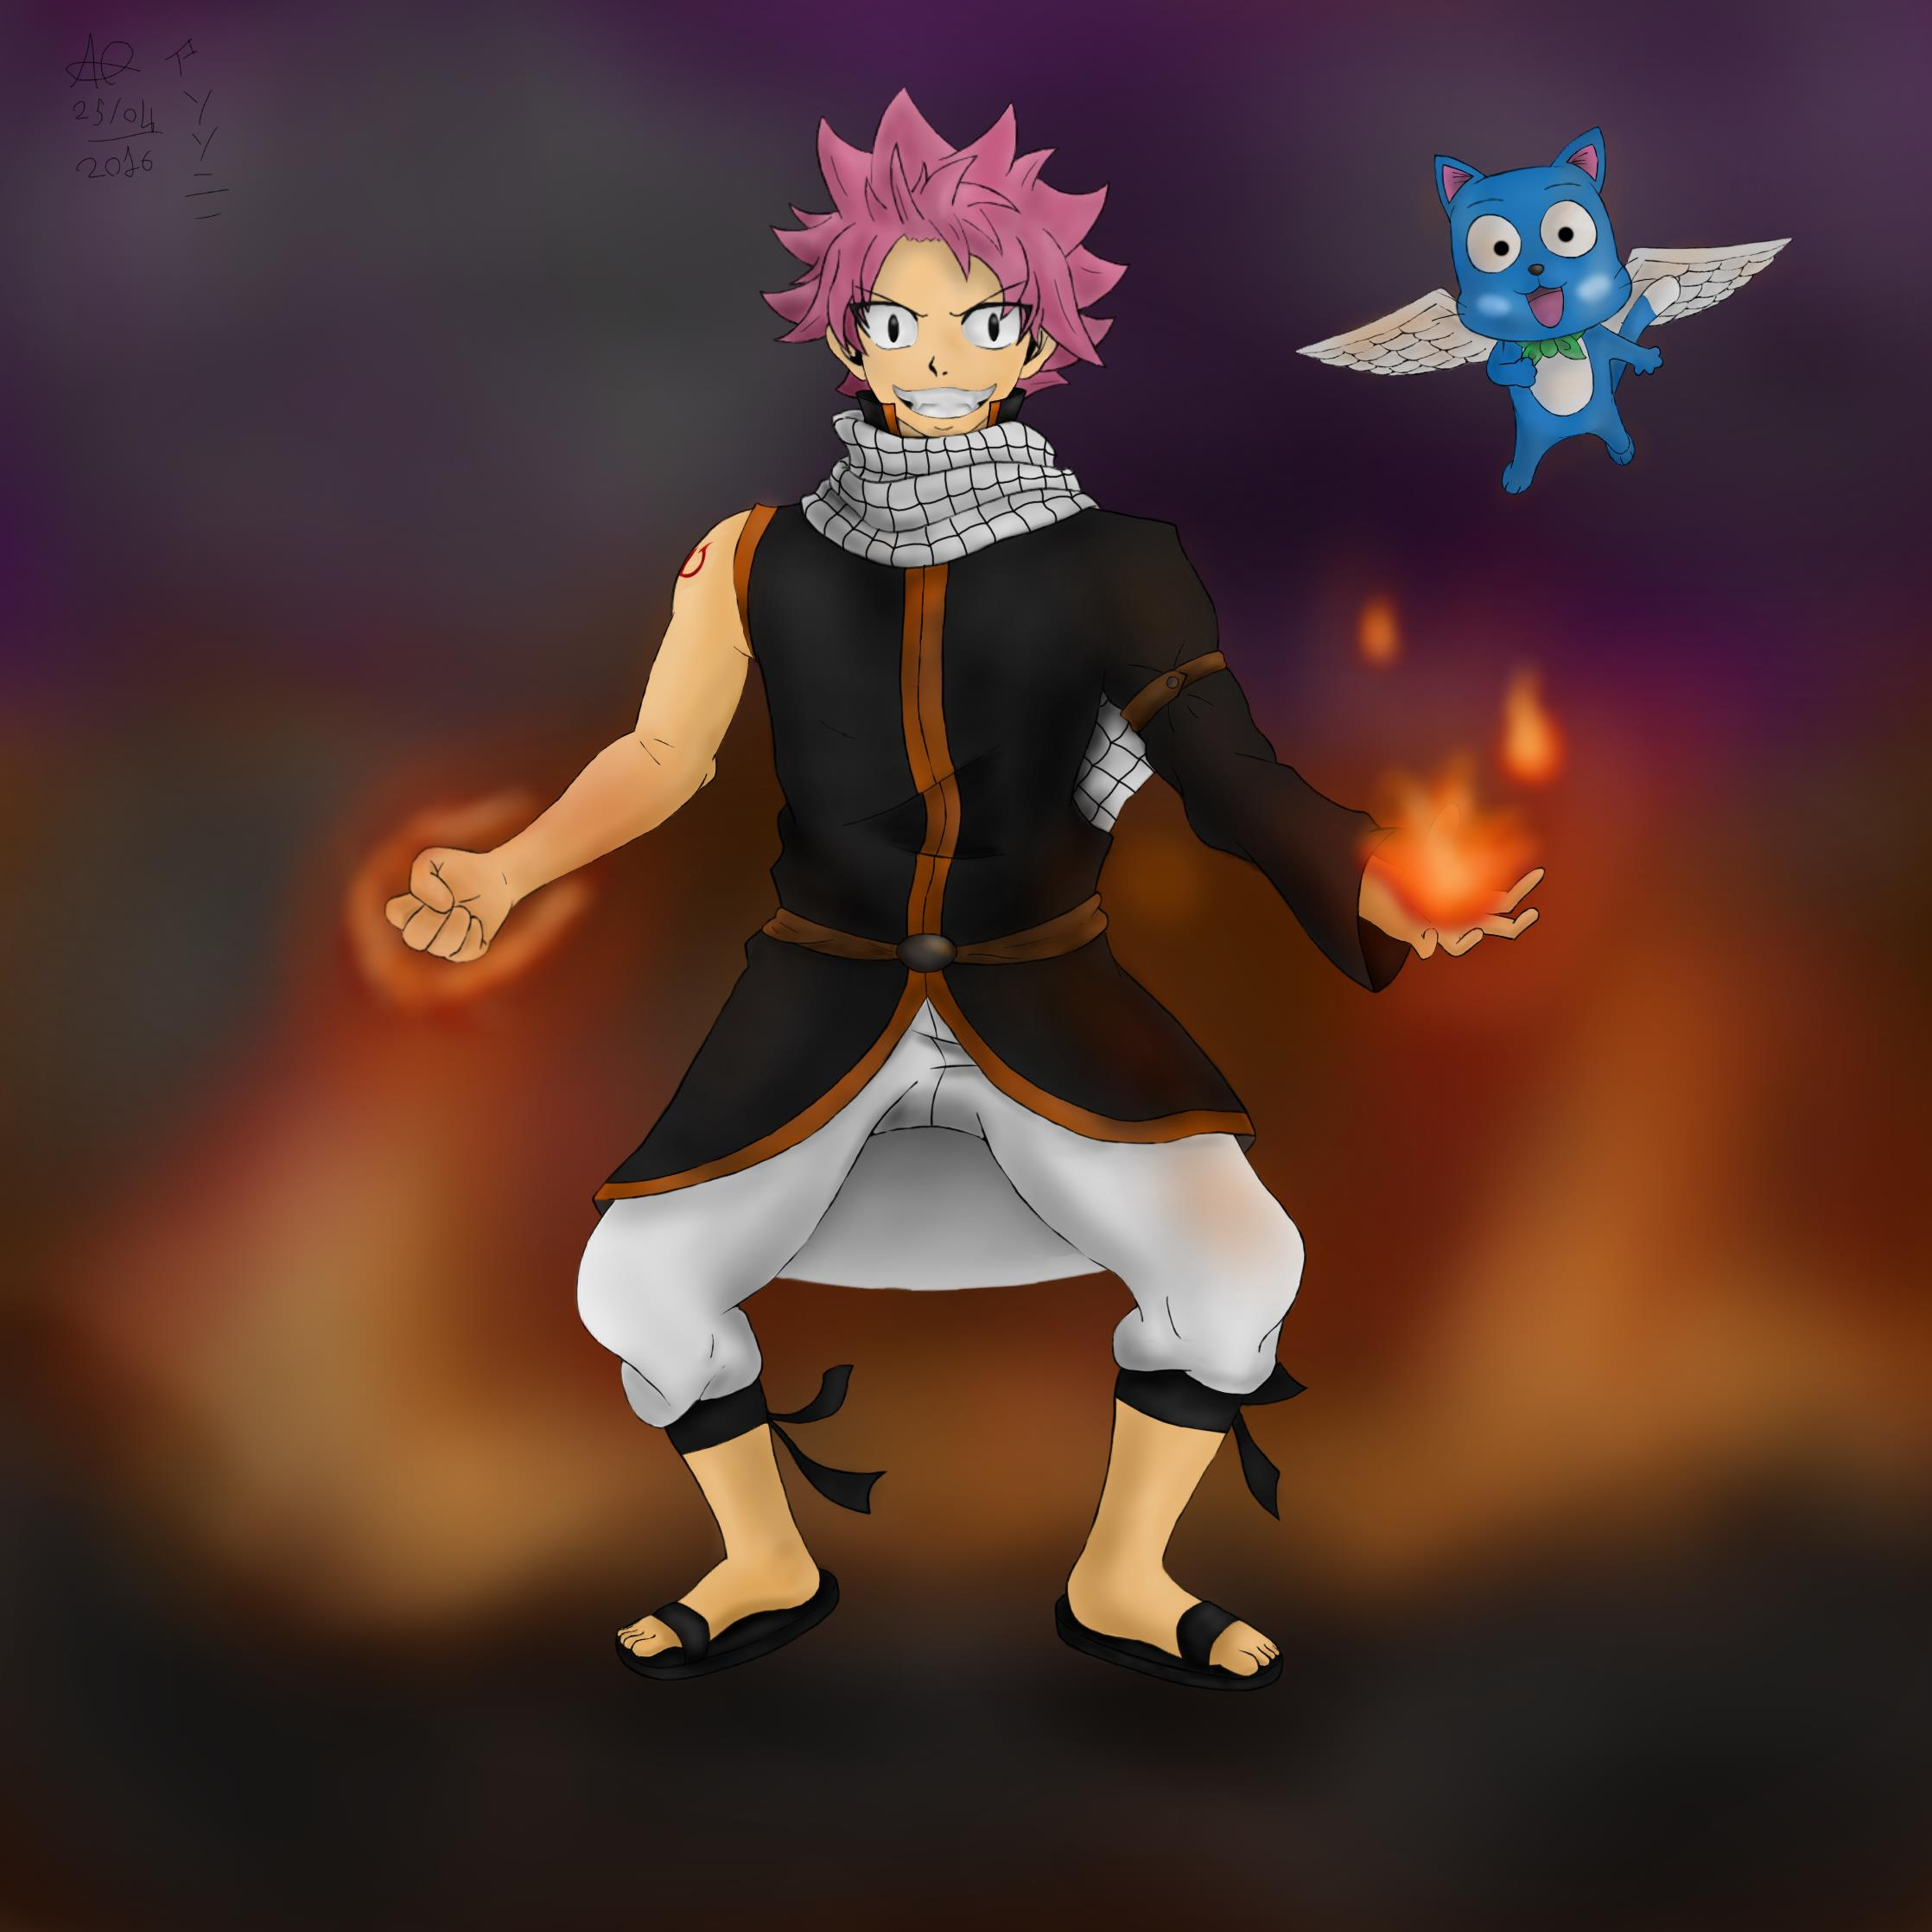 Fairy Tail Natsu Dragneel and Happy